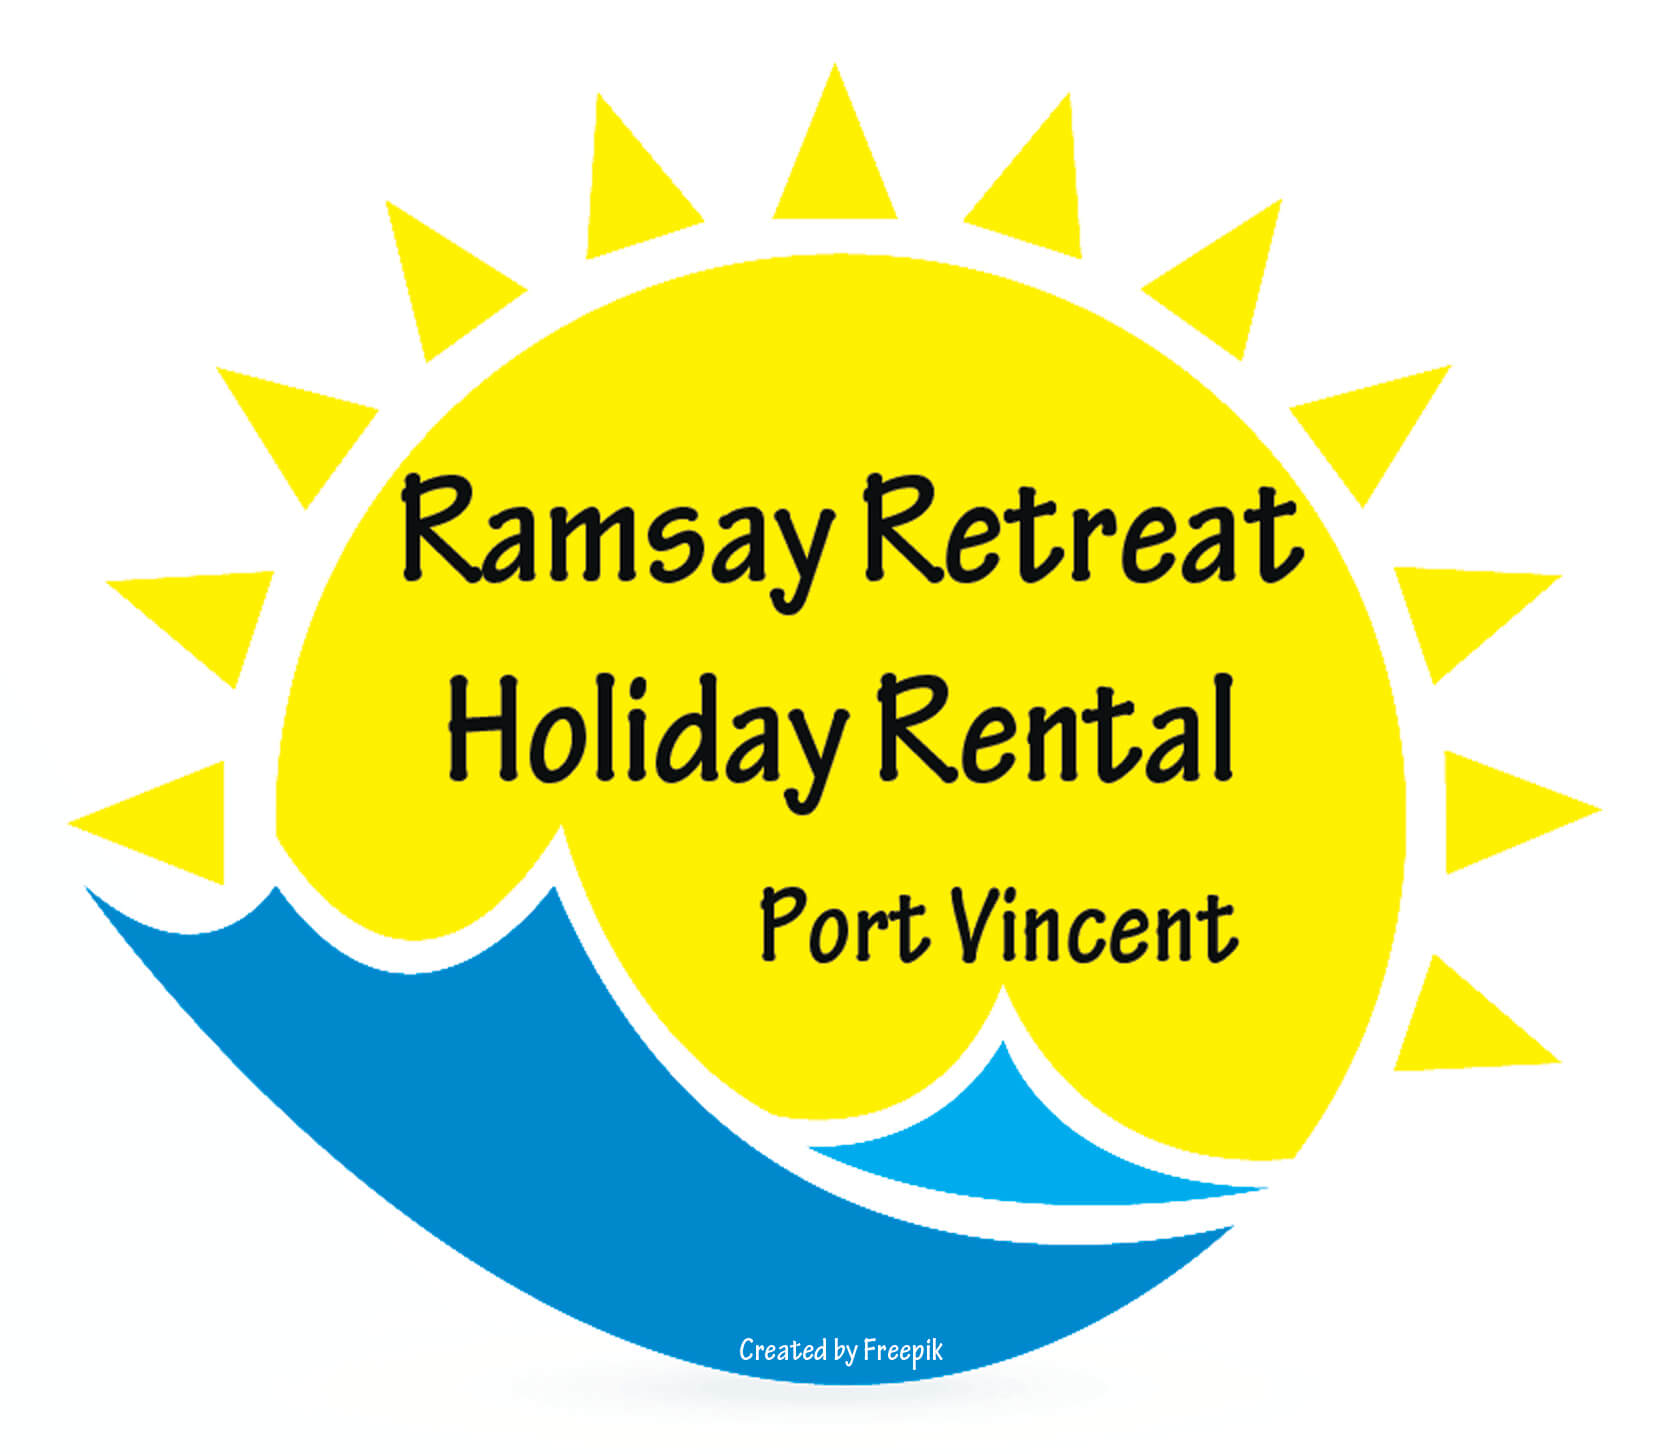 Ramsey Retreat Holiday Rental